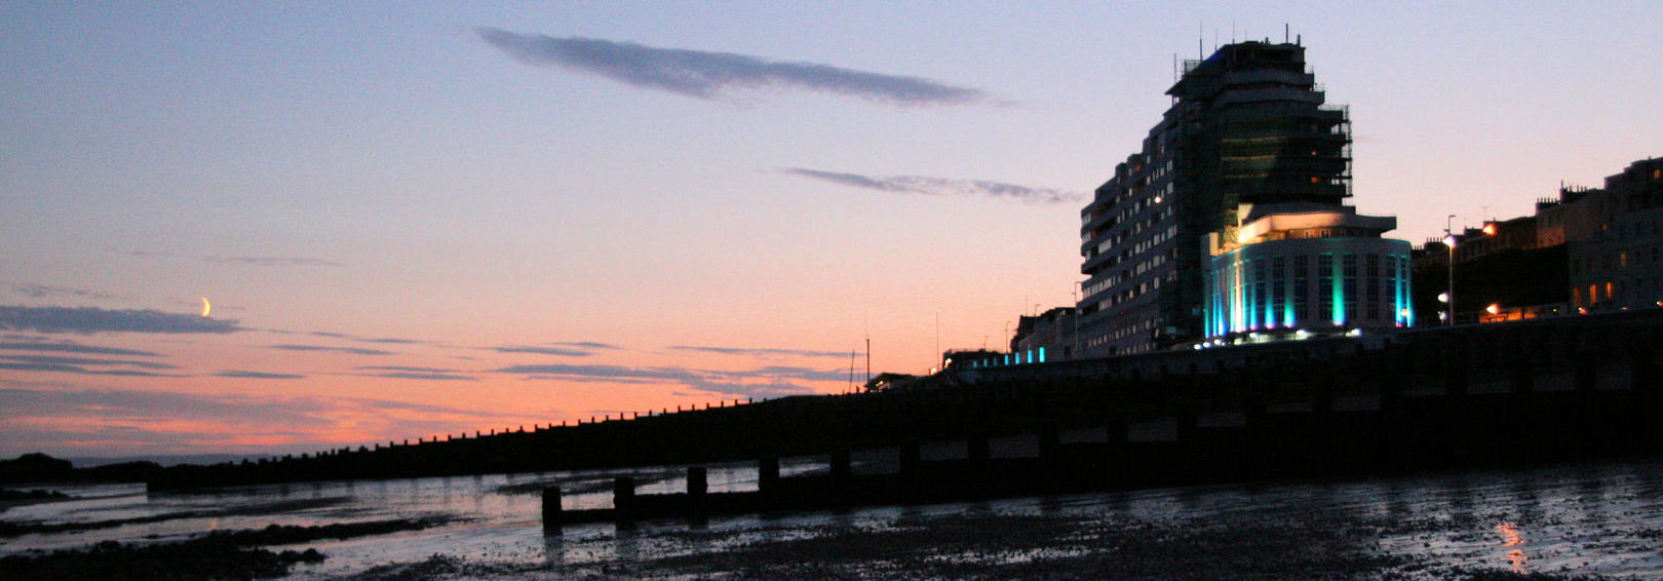 Marine court 'ocean liner' style 1930s flats with blue uplighting at sunset, with beach at low tide